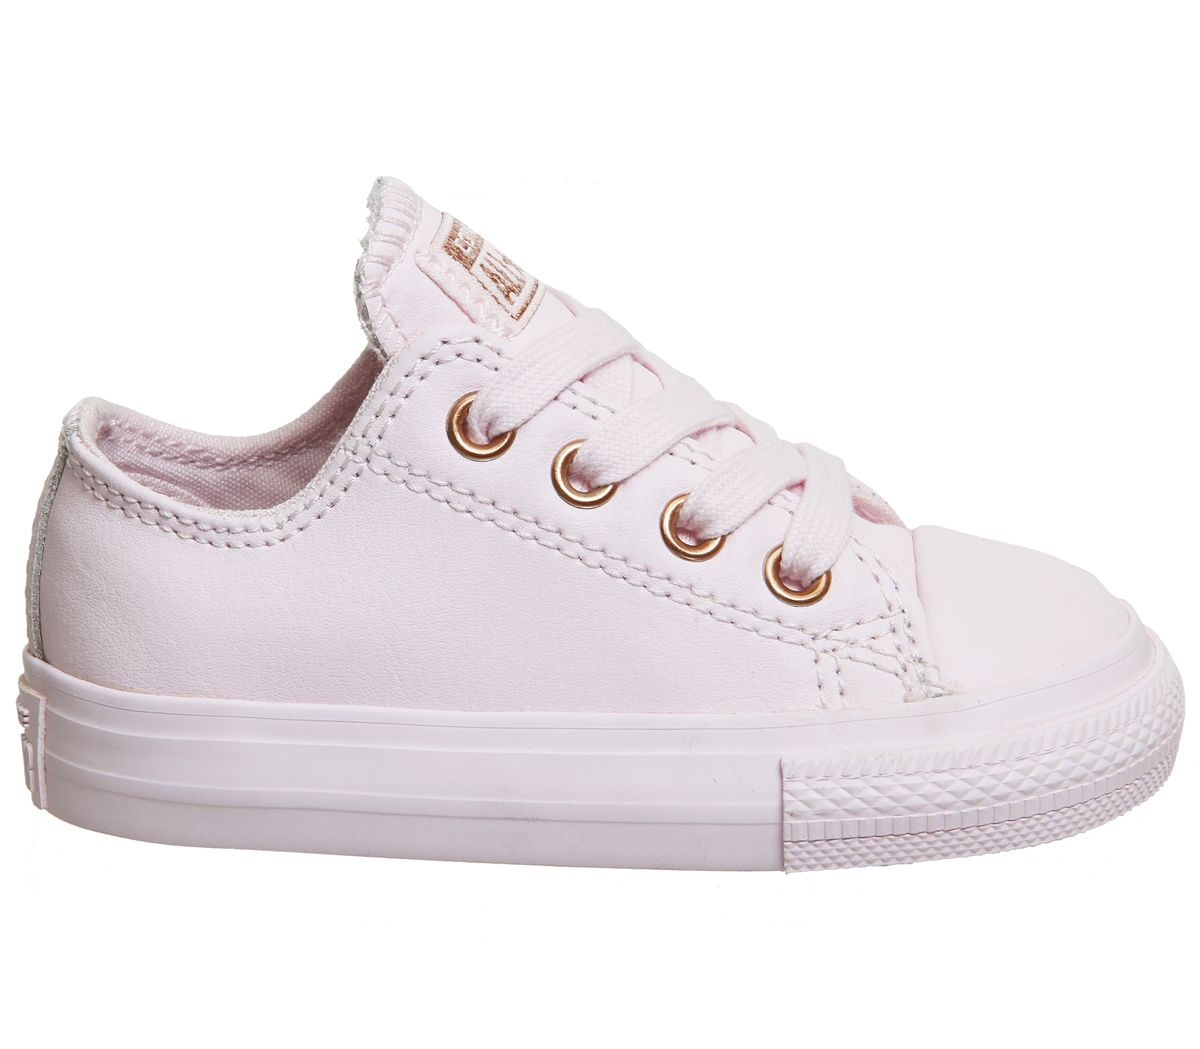 23657ec4da97 Converse All Star Ox Leather Infant Arctic Rose Gold Exclusive - Unisex